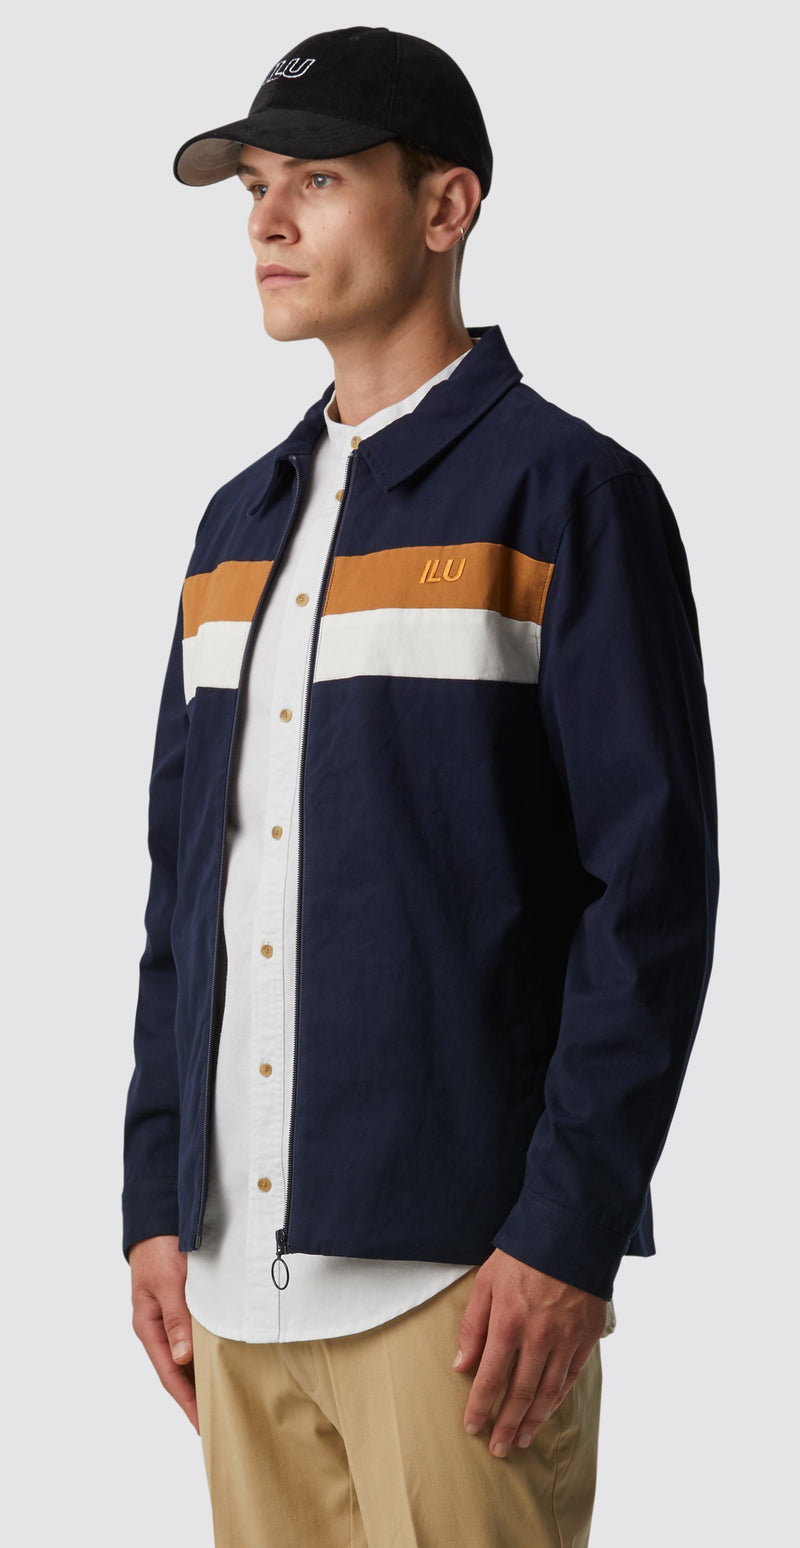 Rocco Jacket - Navy Stripe